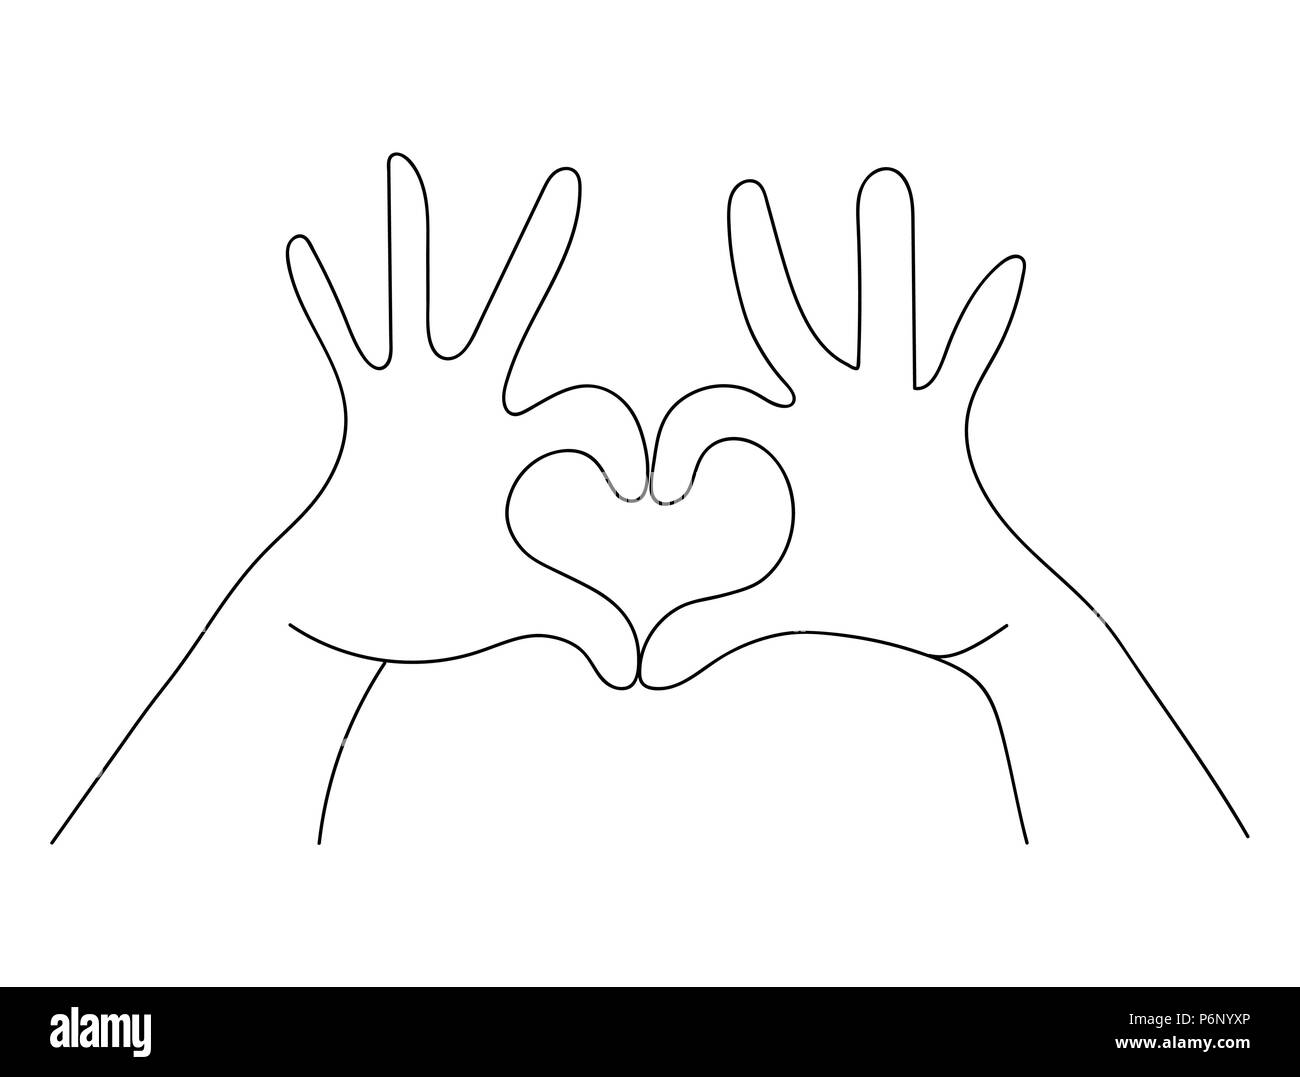 Hands making heart shape sign concept in simple outline style